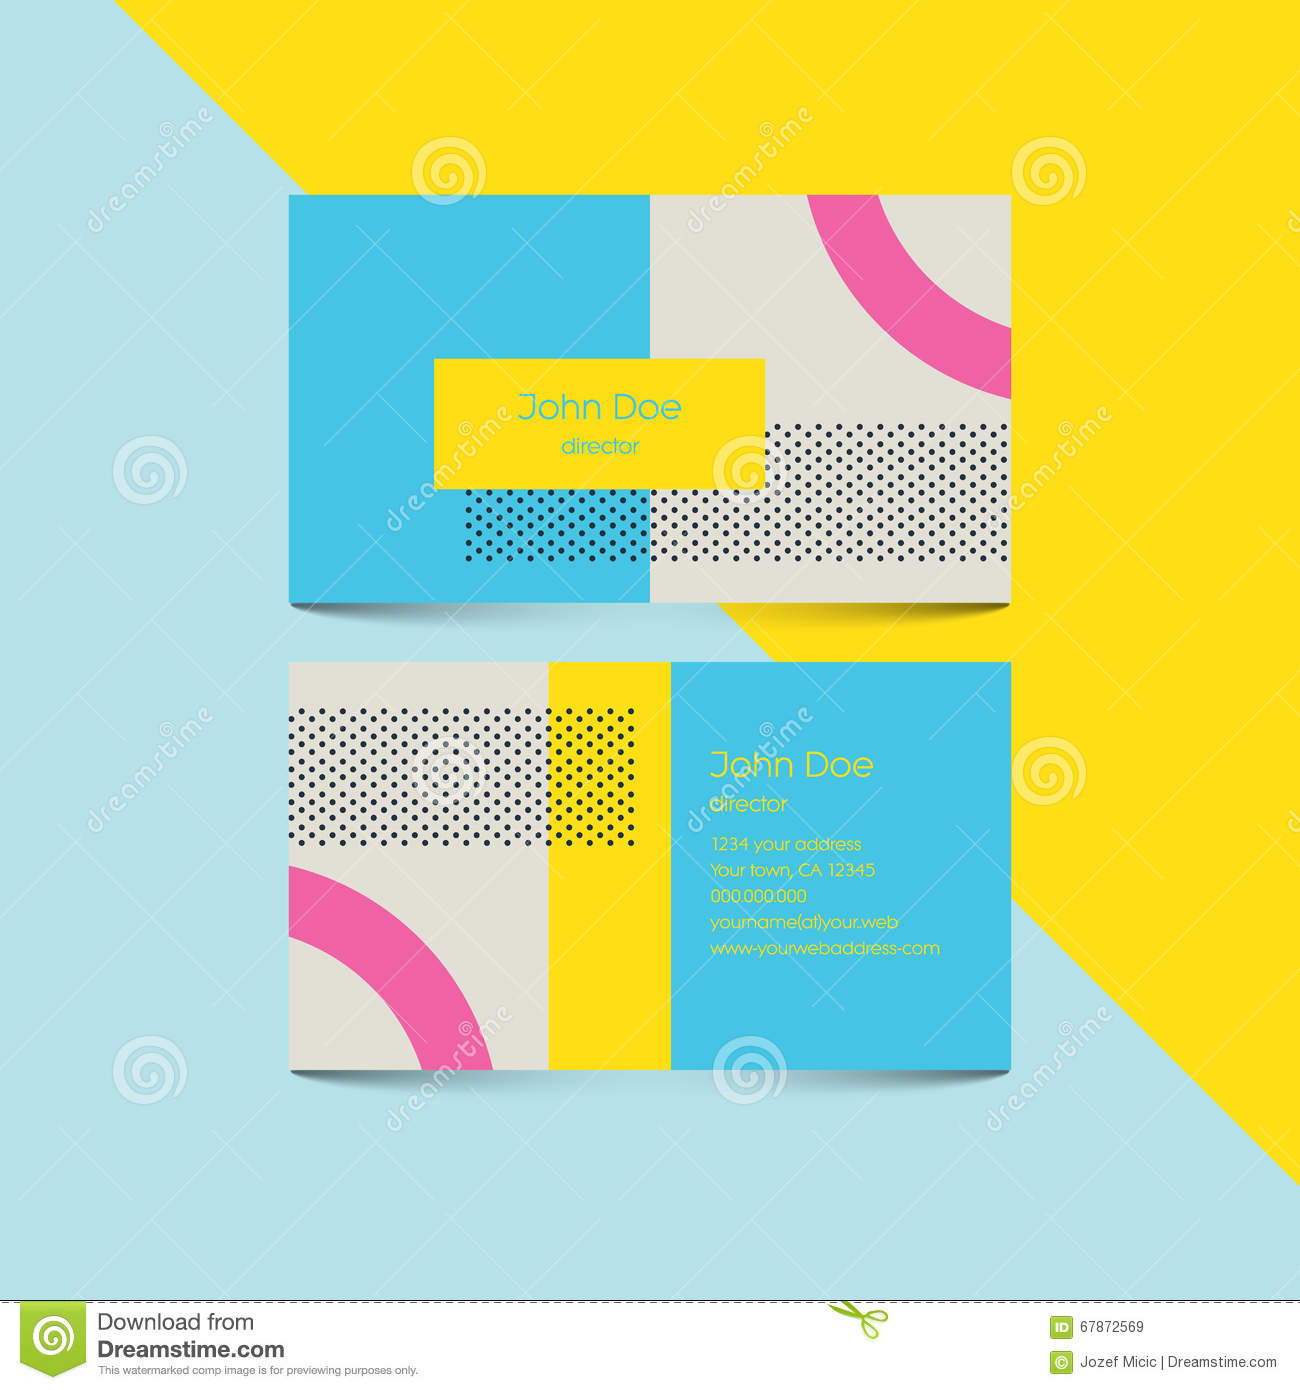 Material design business card template with 80s style background download material design business card template with 80s style background modern retro elements and geometric colourmoves